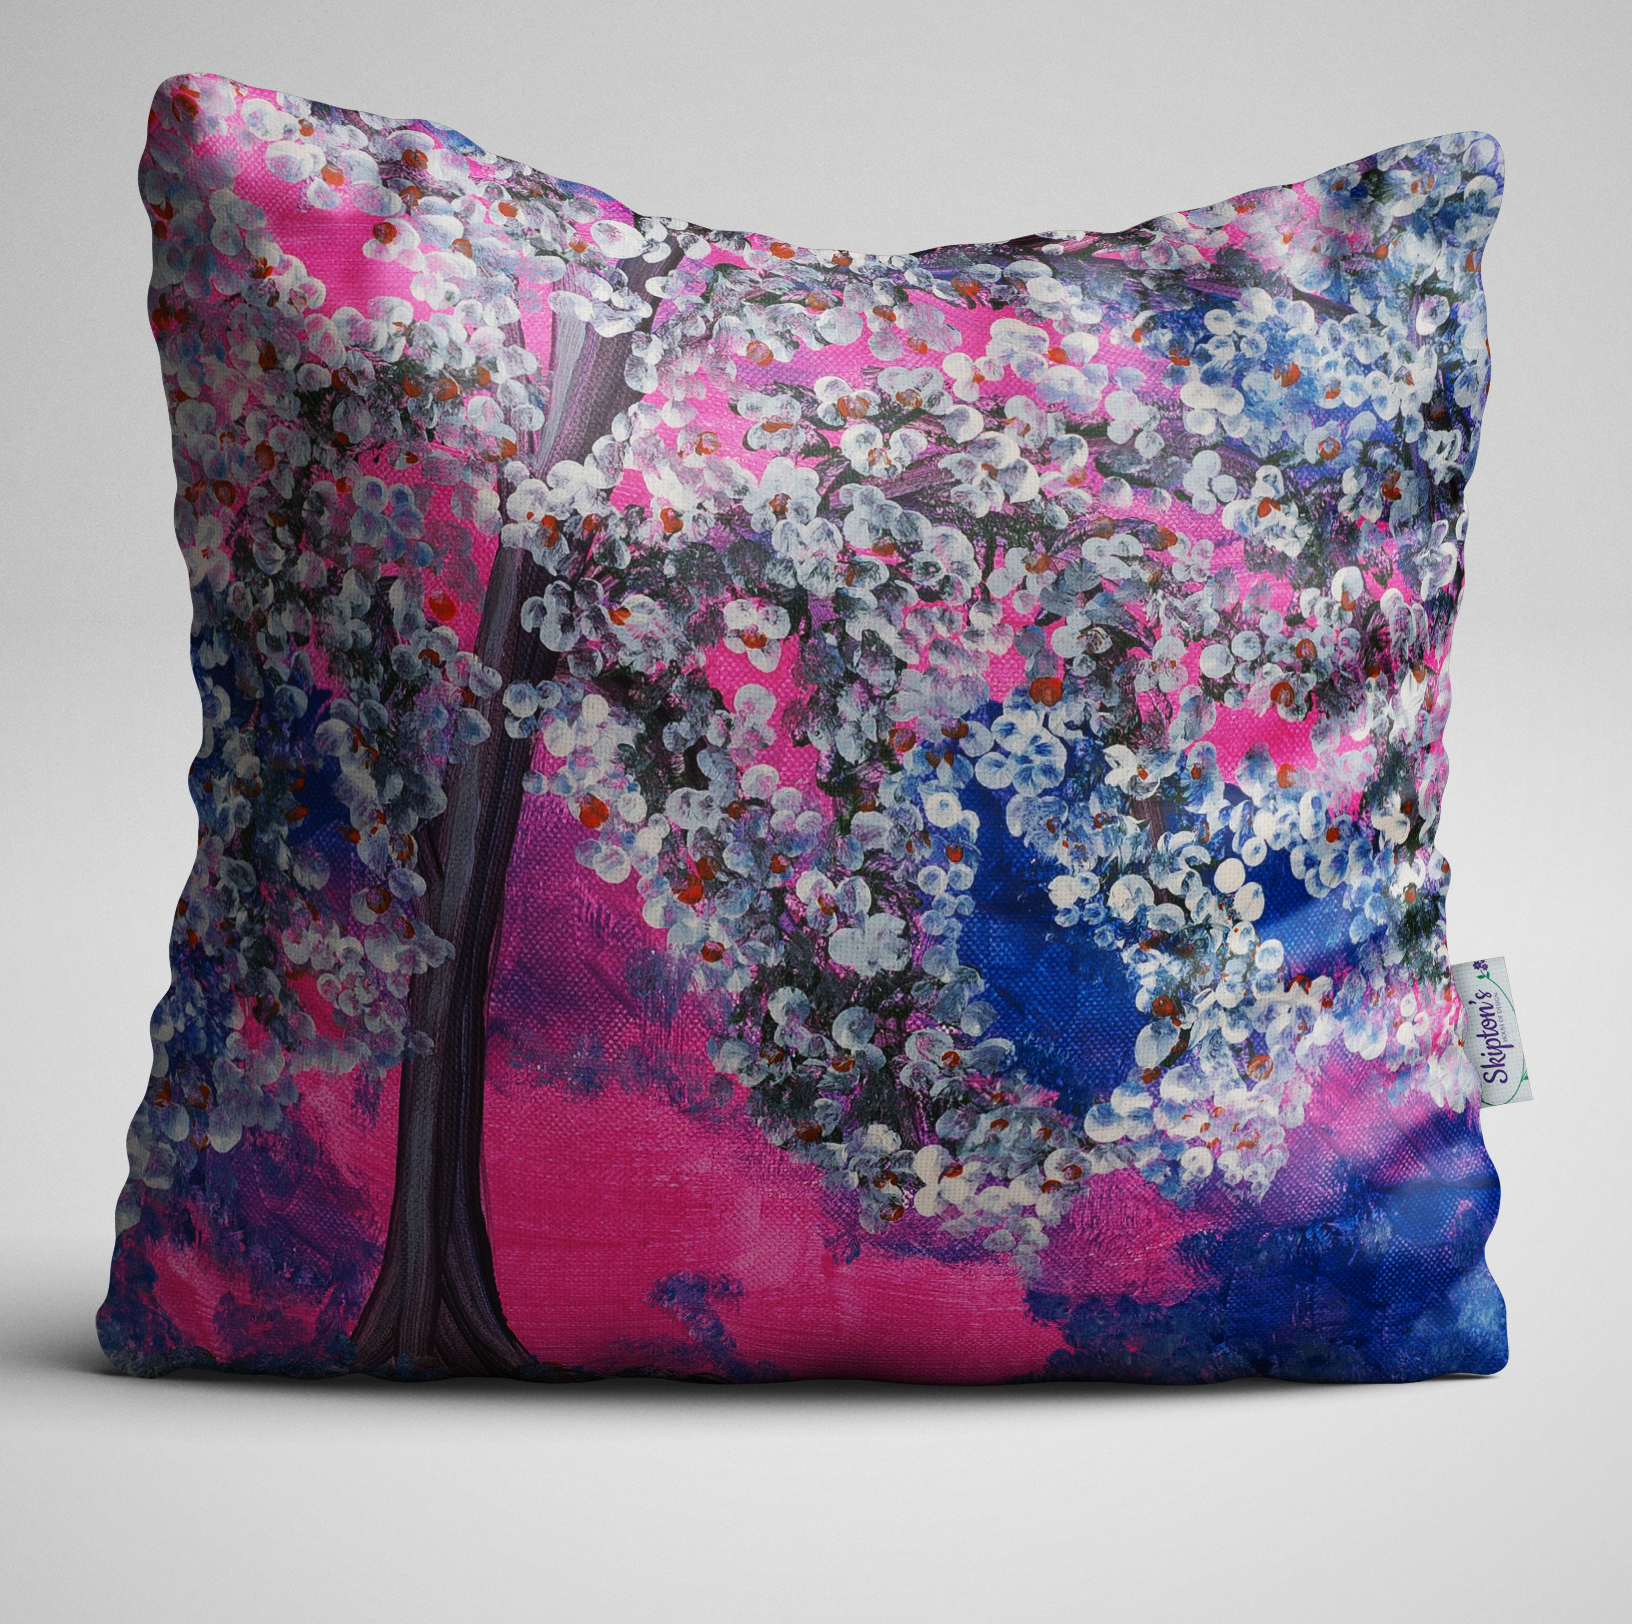 Luxury Designer Velvet Cushion with Cherry Blossom design